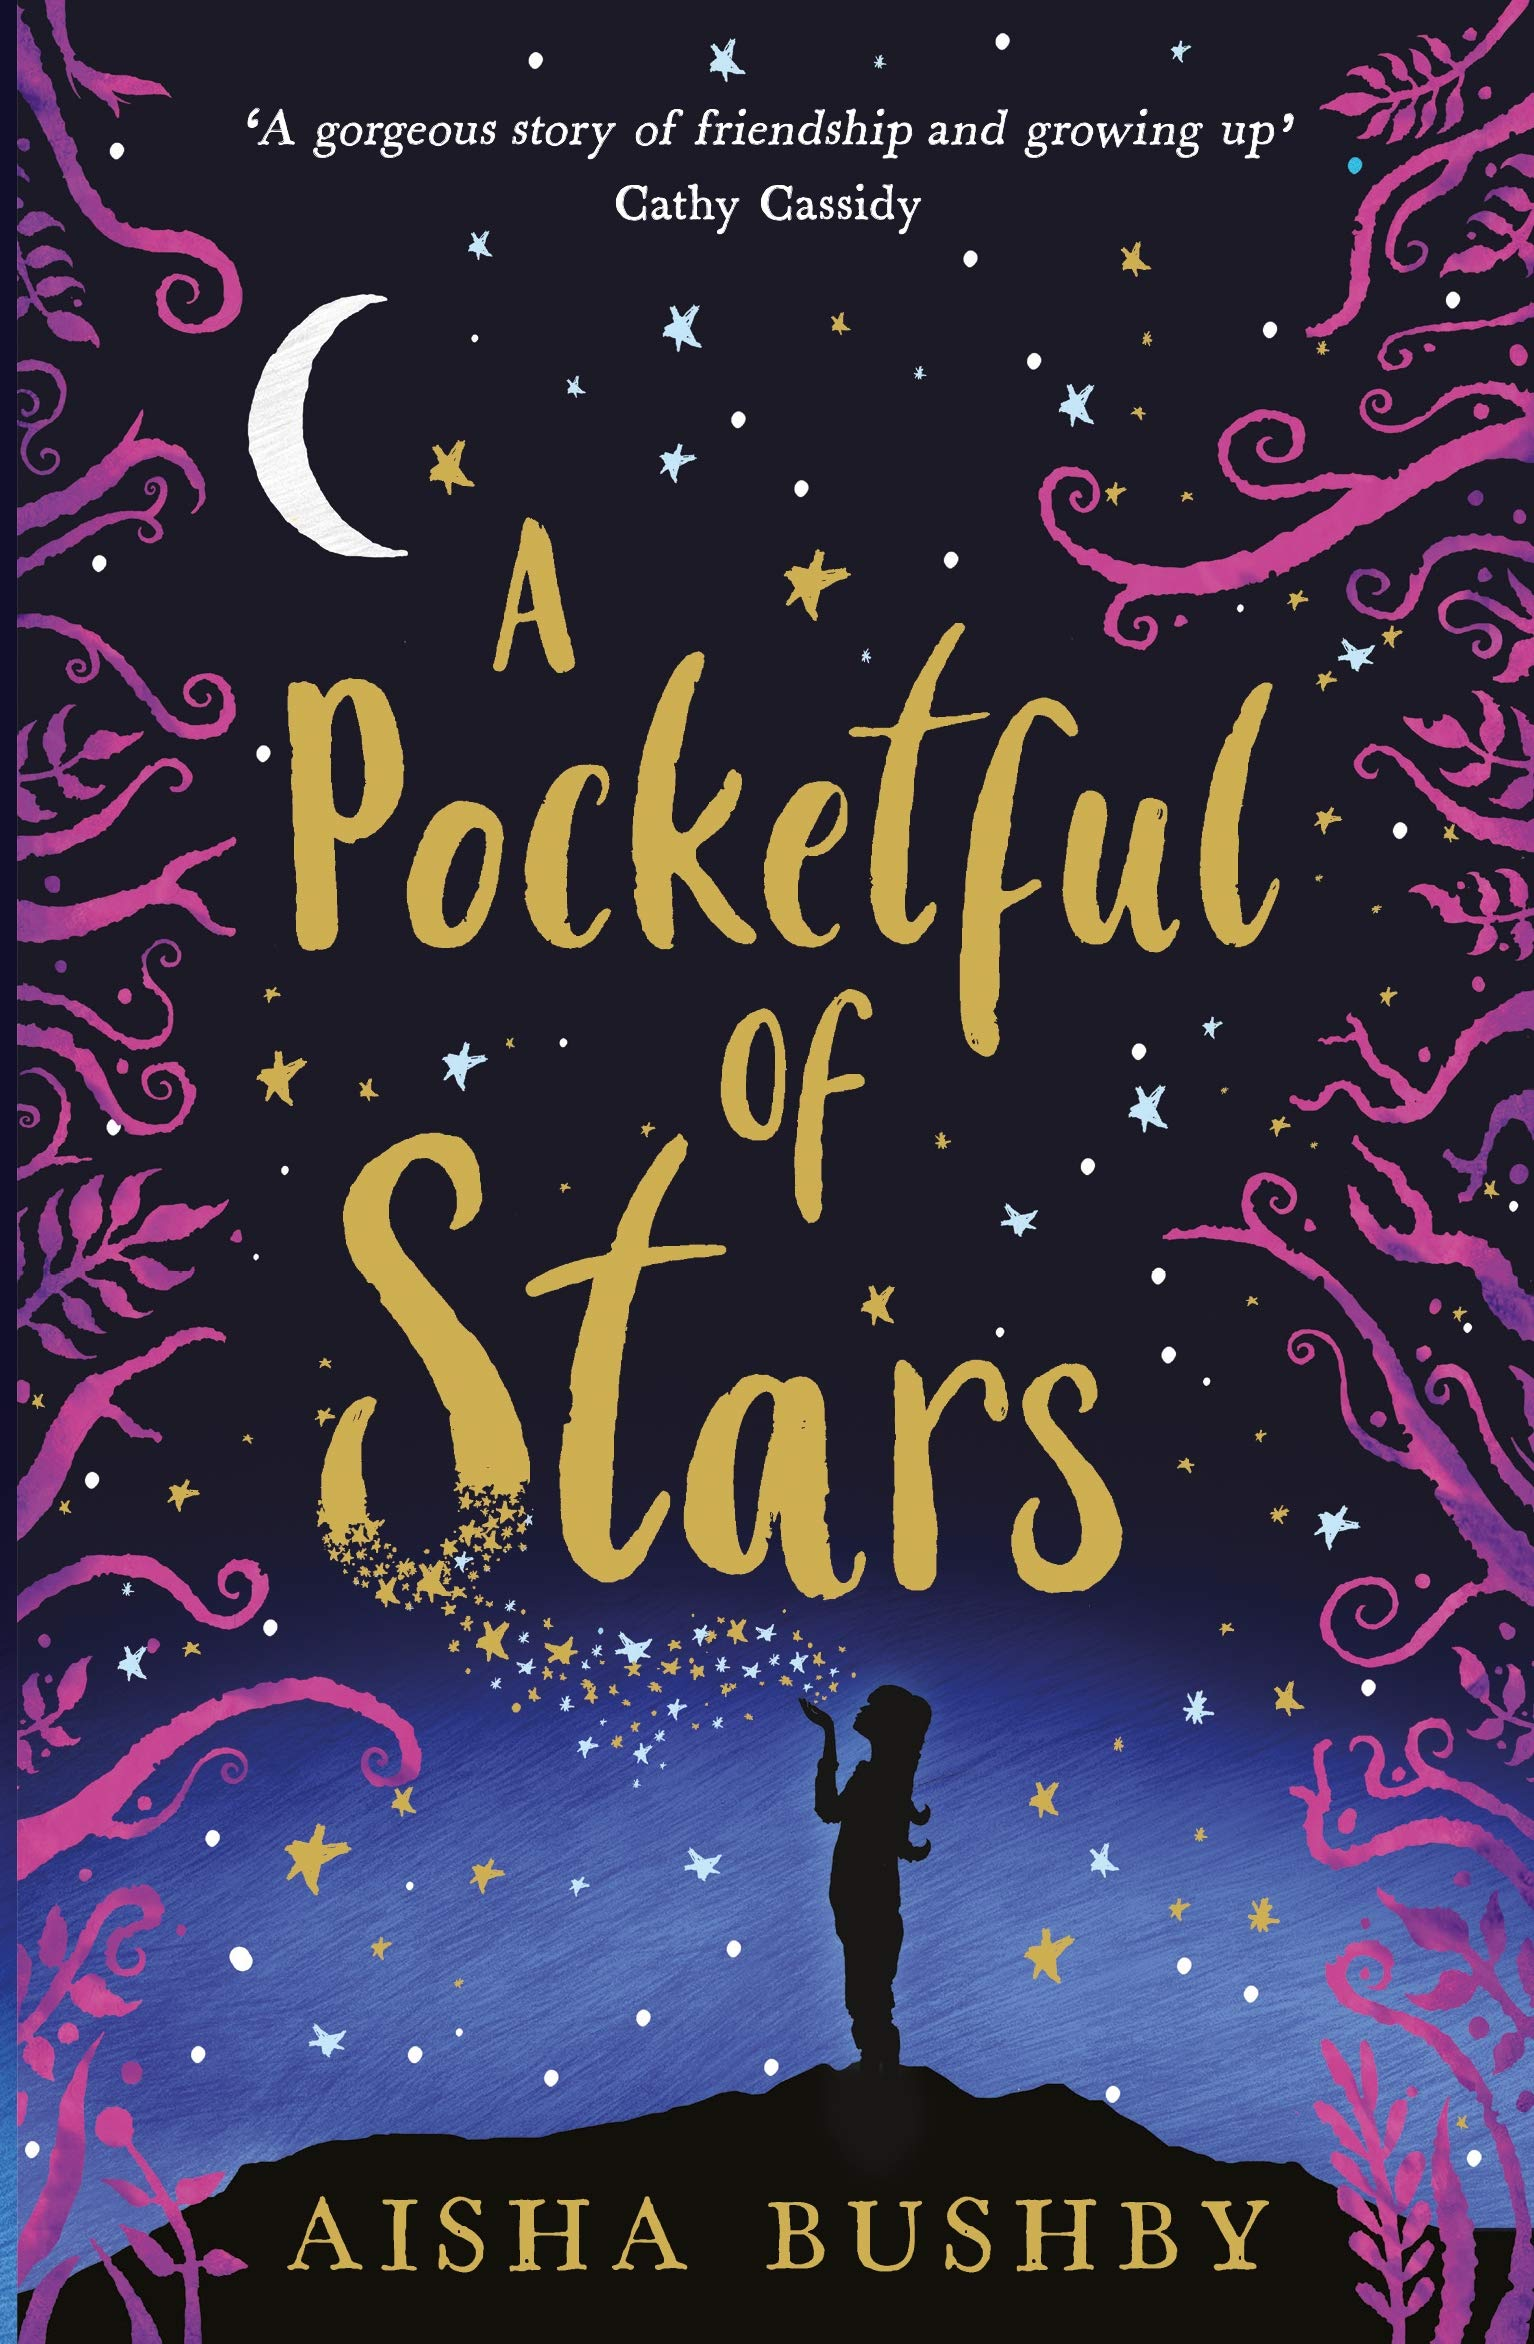 Buy A Pocketful of Stars Book Online at Low Prices in India | A Pocketful  of Stars Reviews & Ratings - Amazon.in